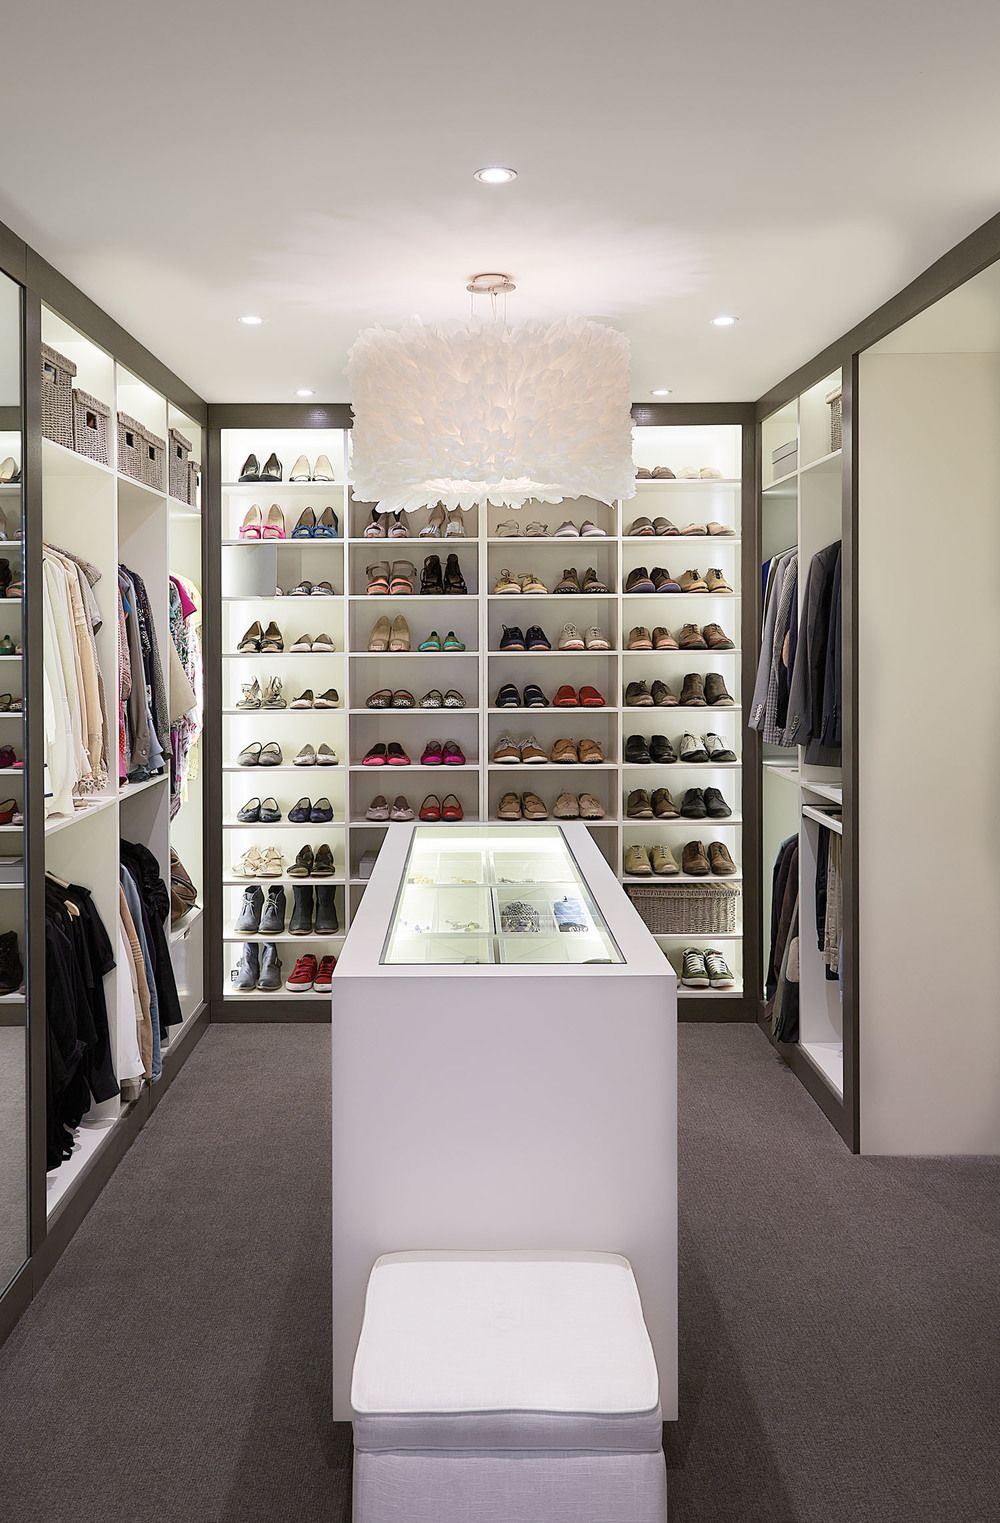 Dressing Rooms Designs Pictures: U Shaped Dressing Room With Hanger And Rack System Closet